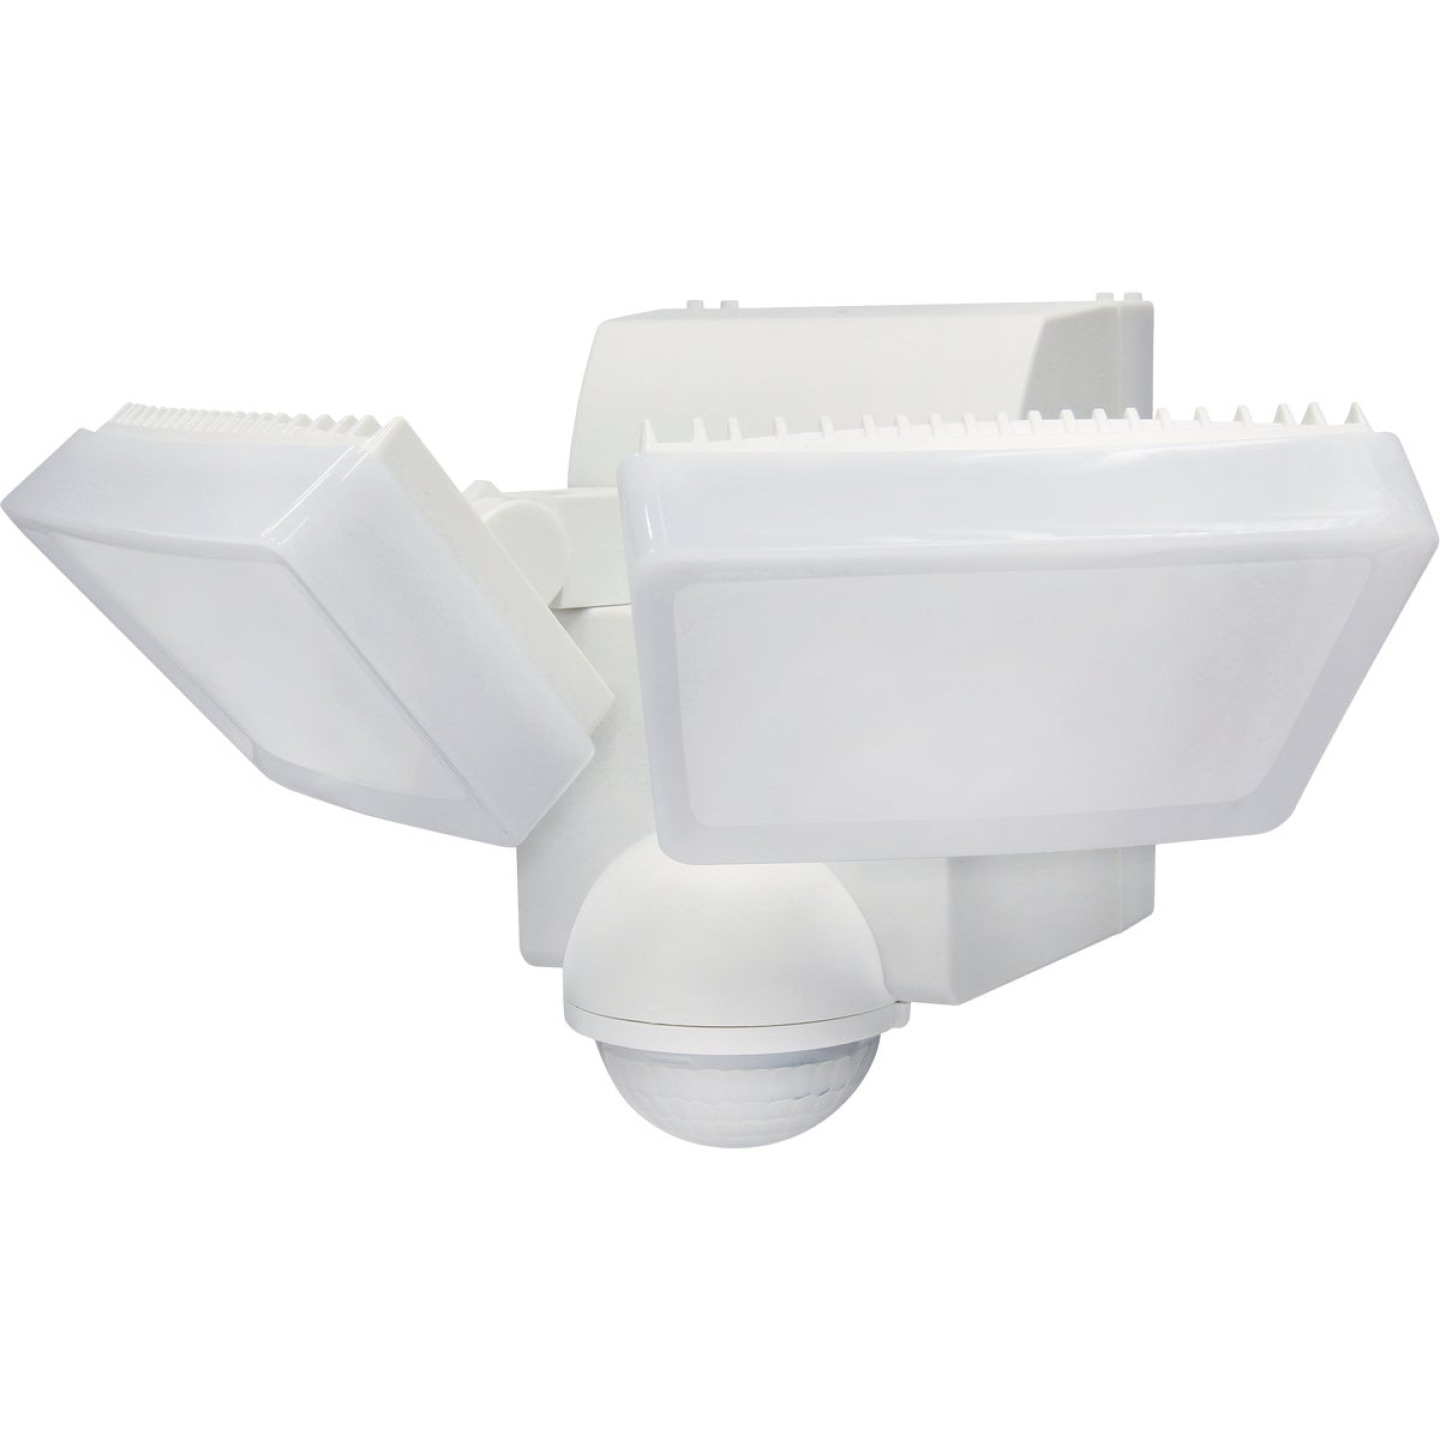 IQ America White 800 Lm. LED Motion Sensing Battery Operated 2-Head Security Light Fixture Image 1